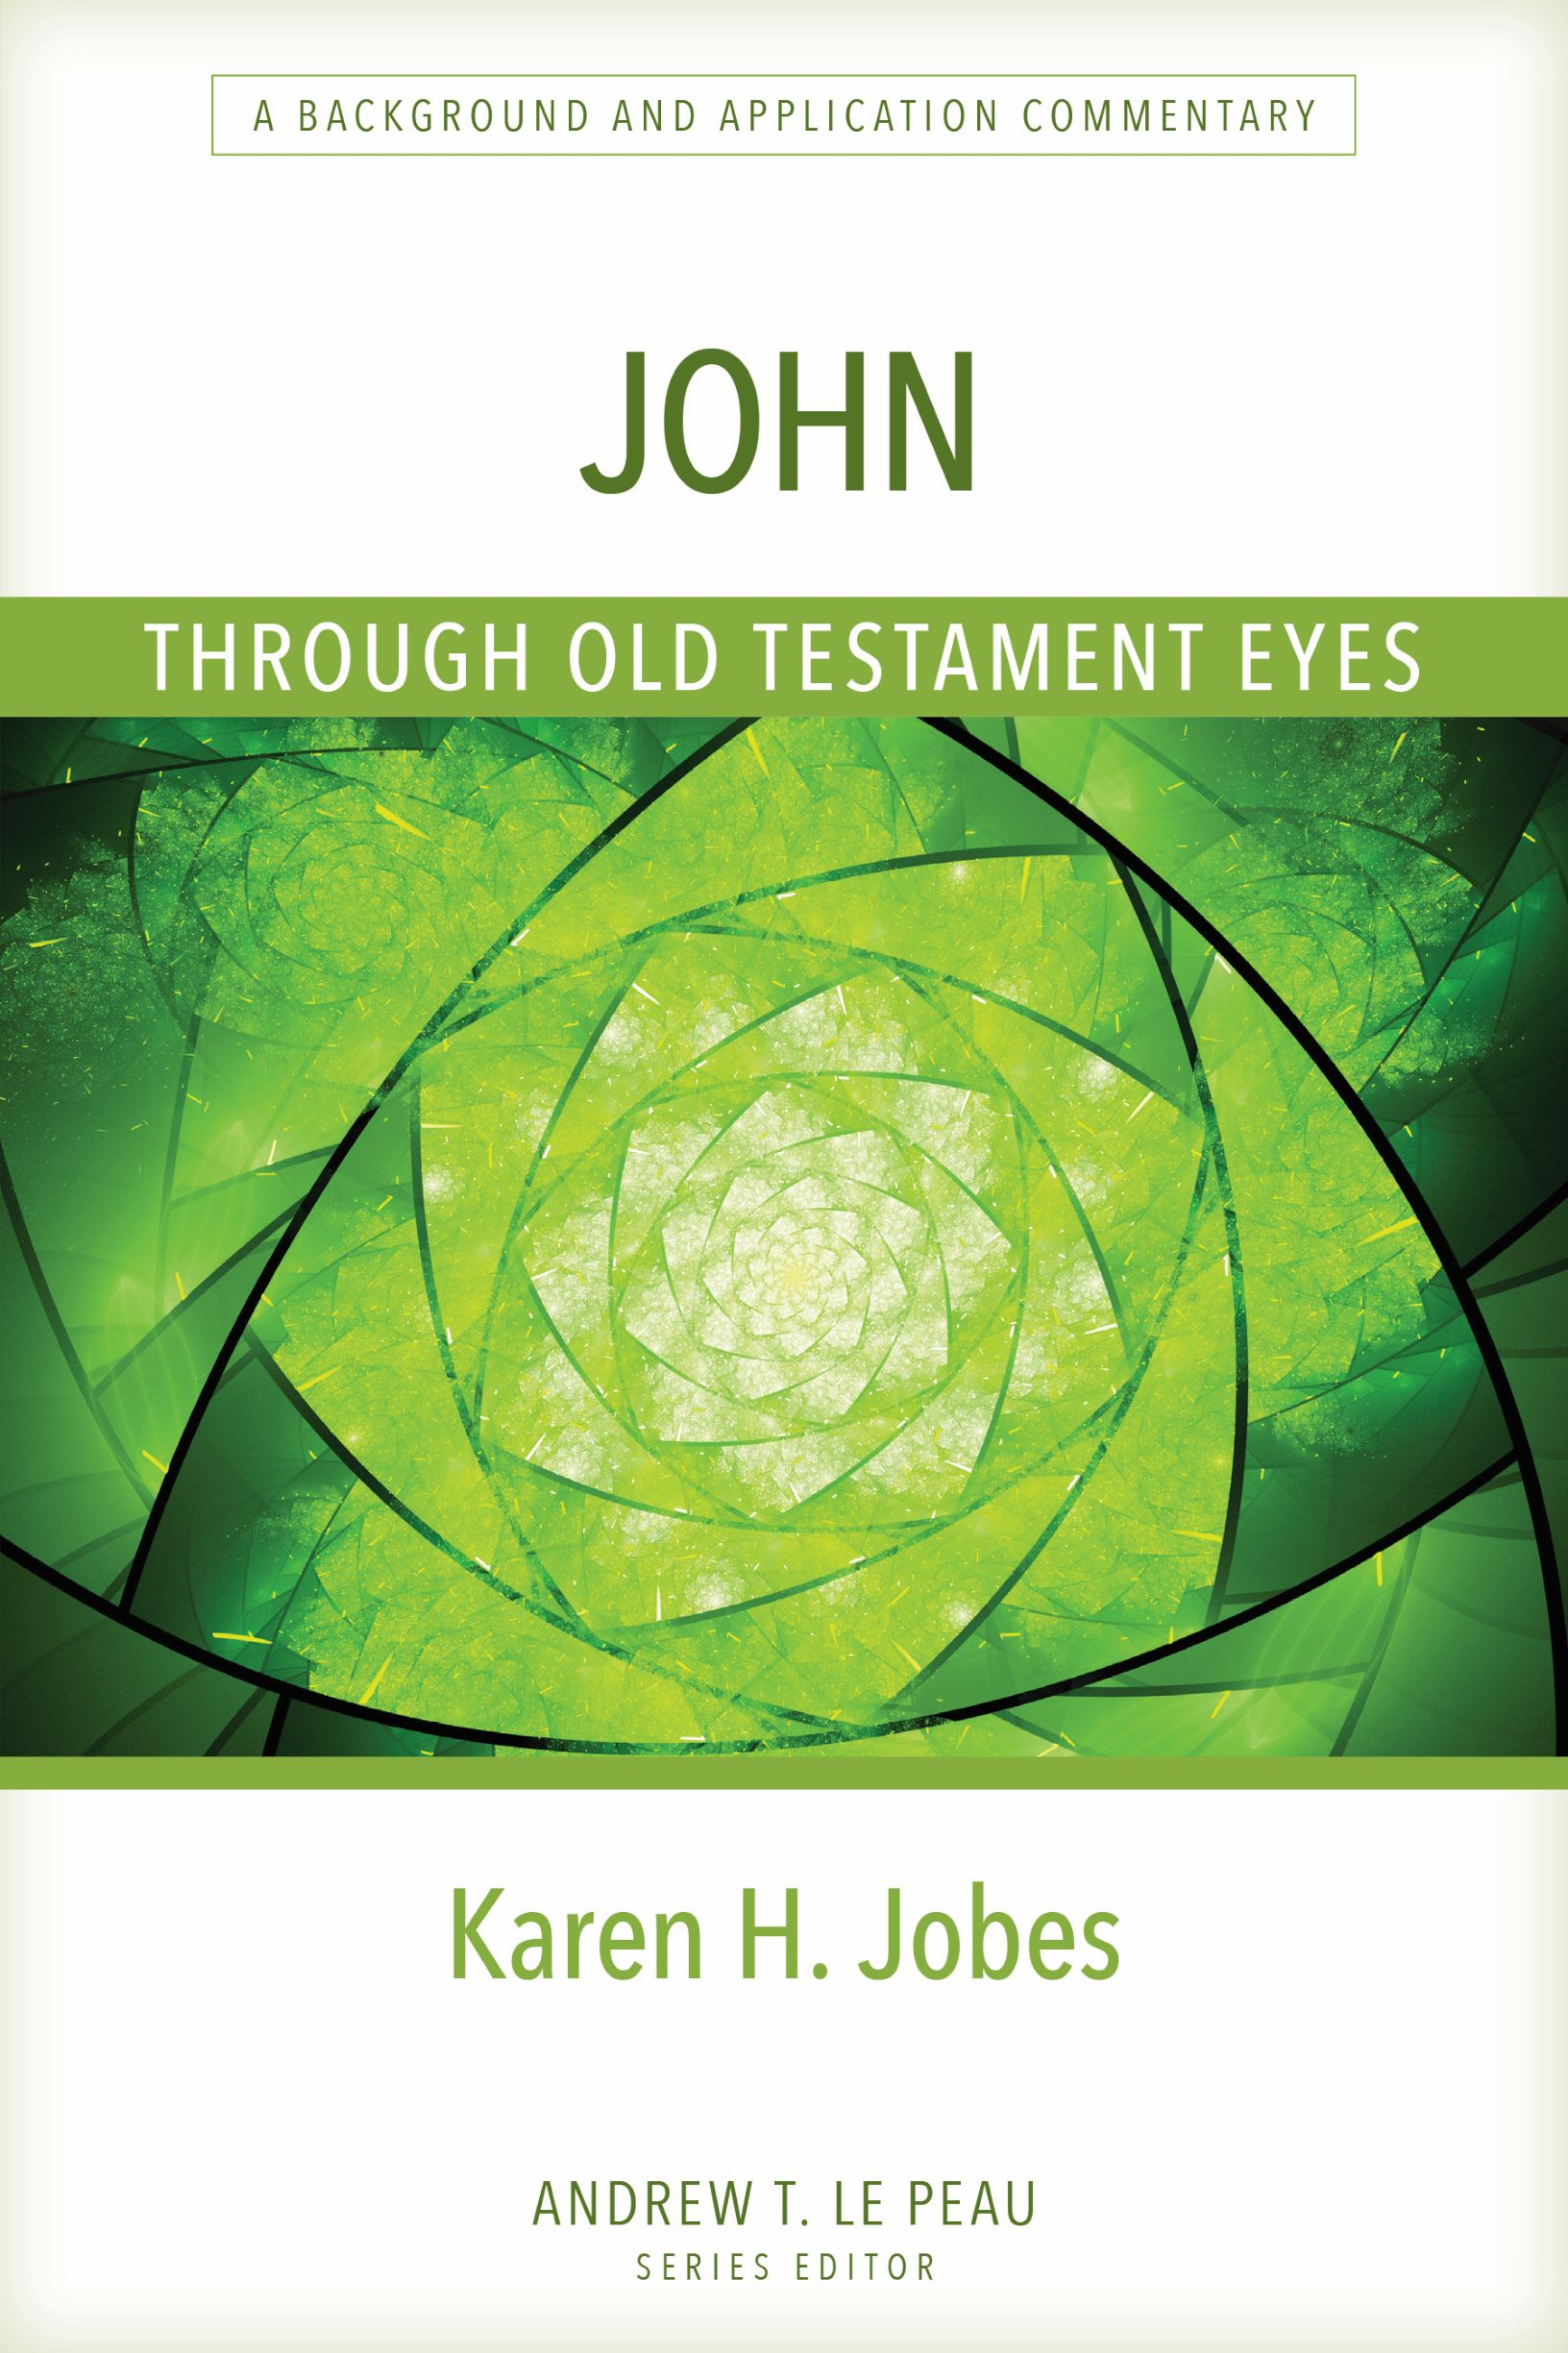 John Through Old Testament Eyes